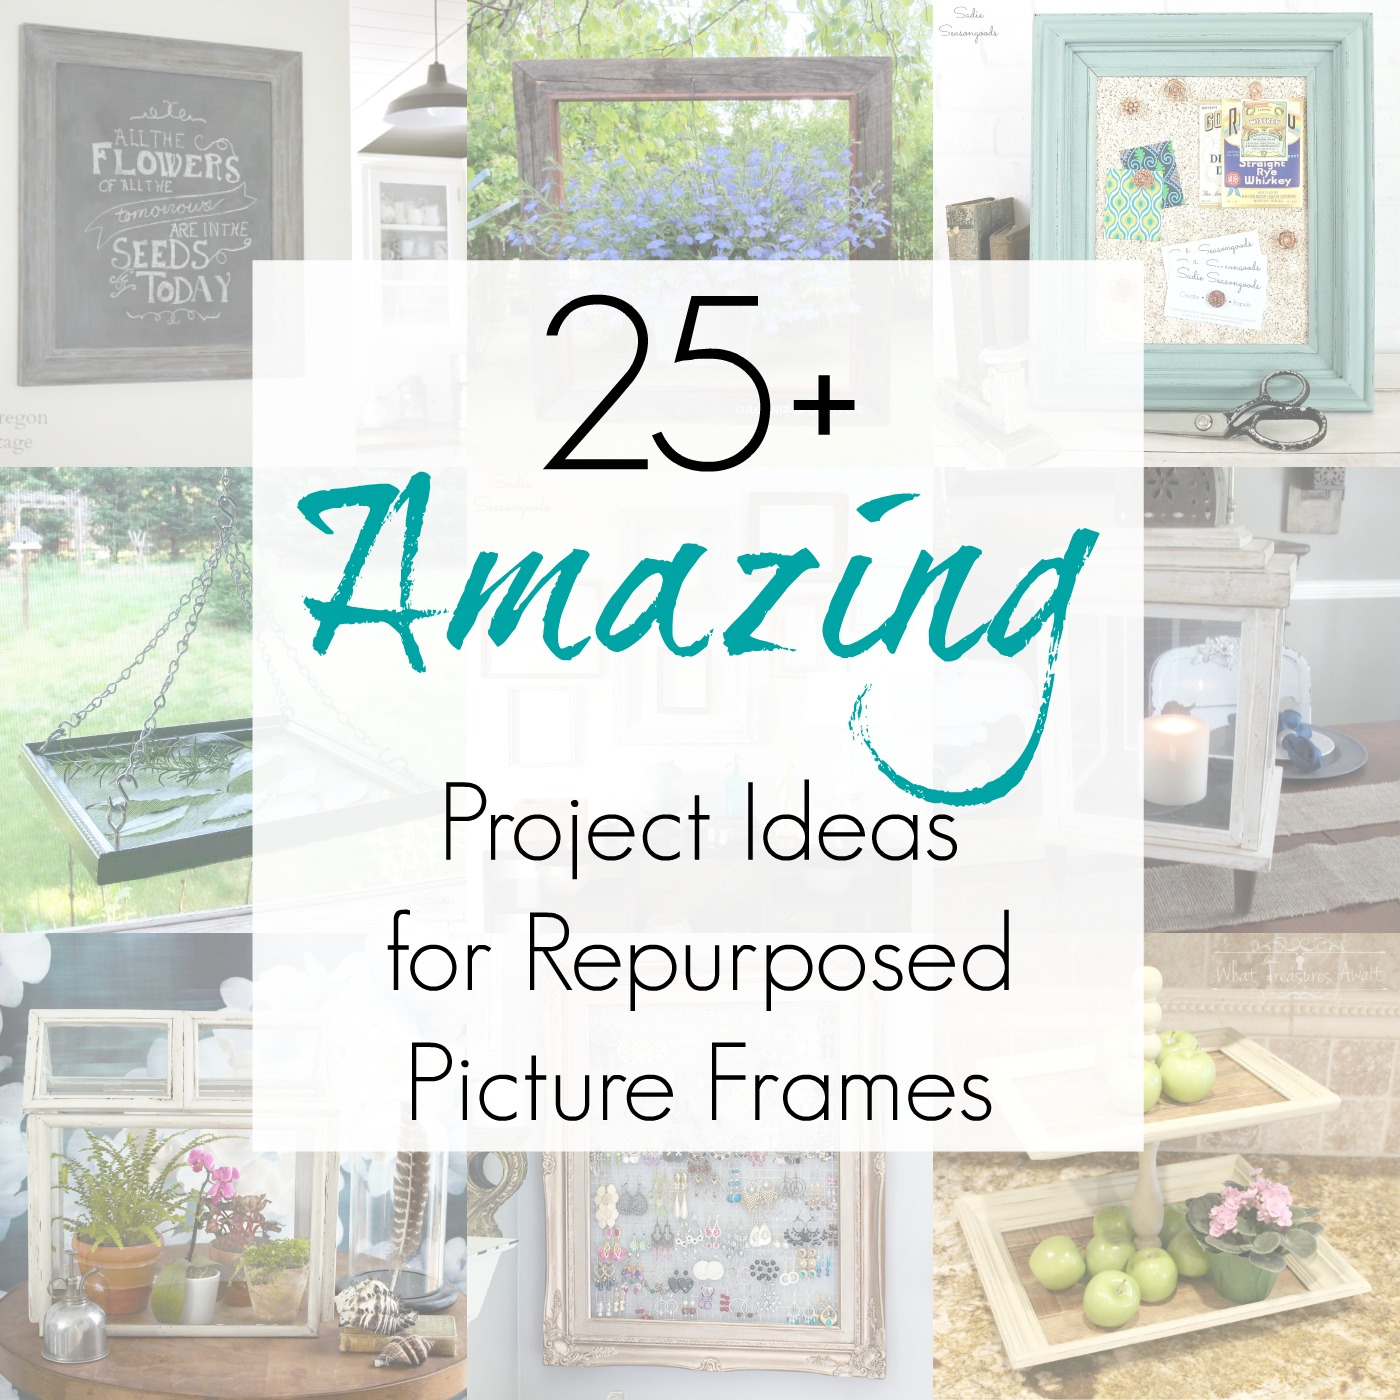 30+ Upcycling Ideas for Cheap Frames / Picture Frames from the Thrift Store